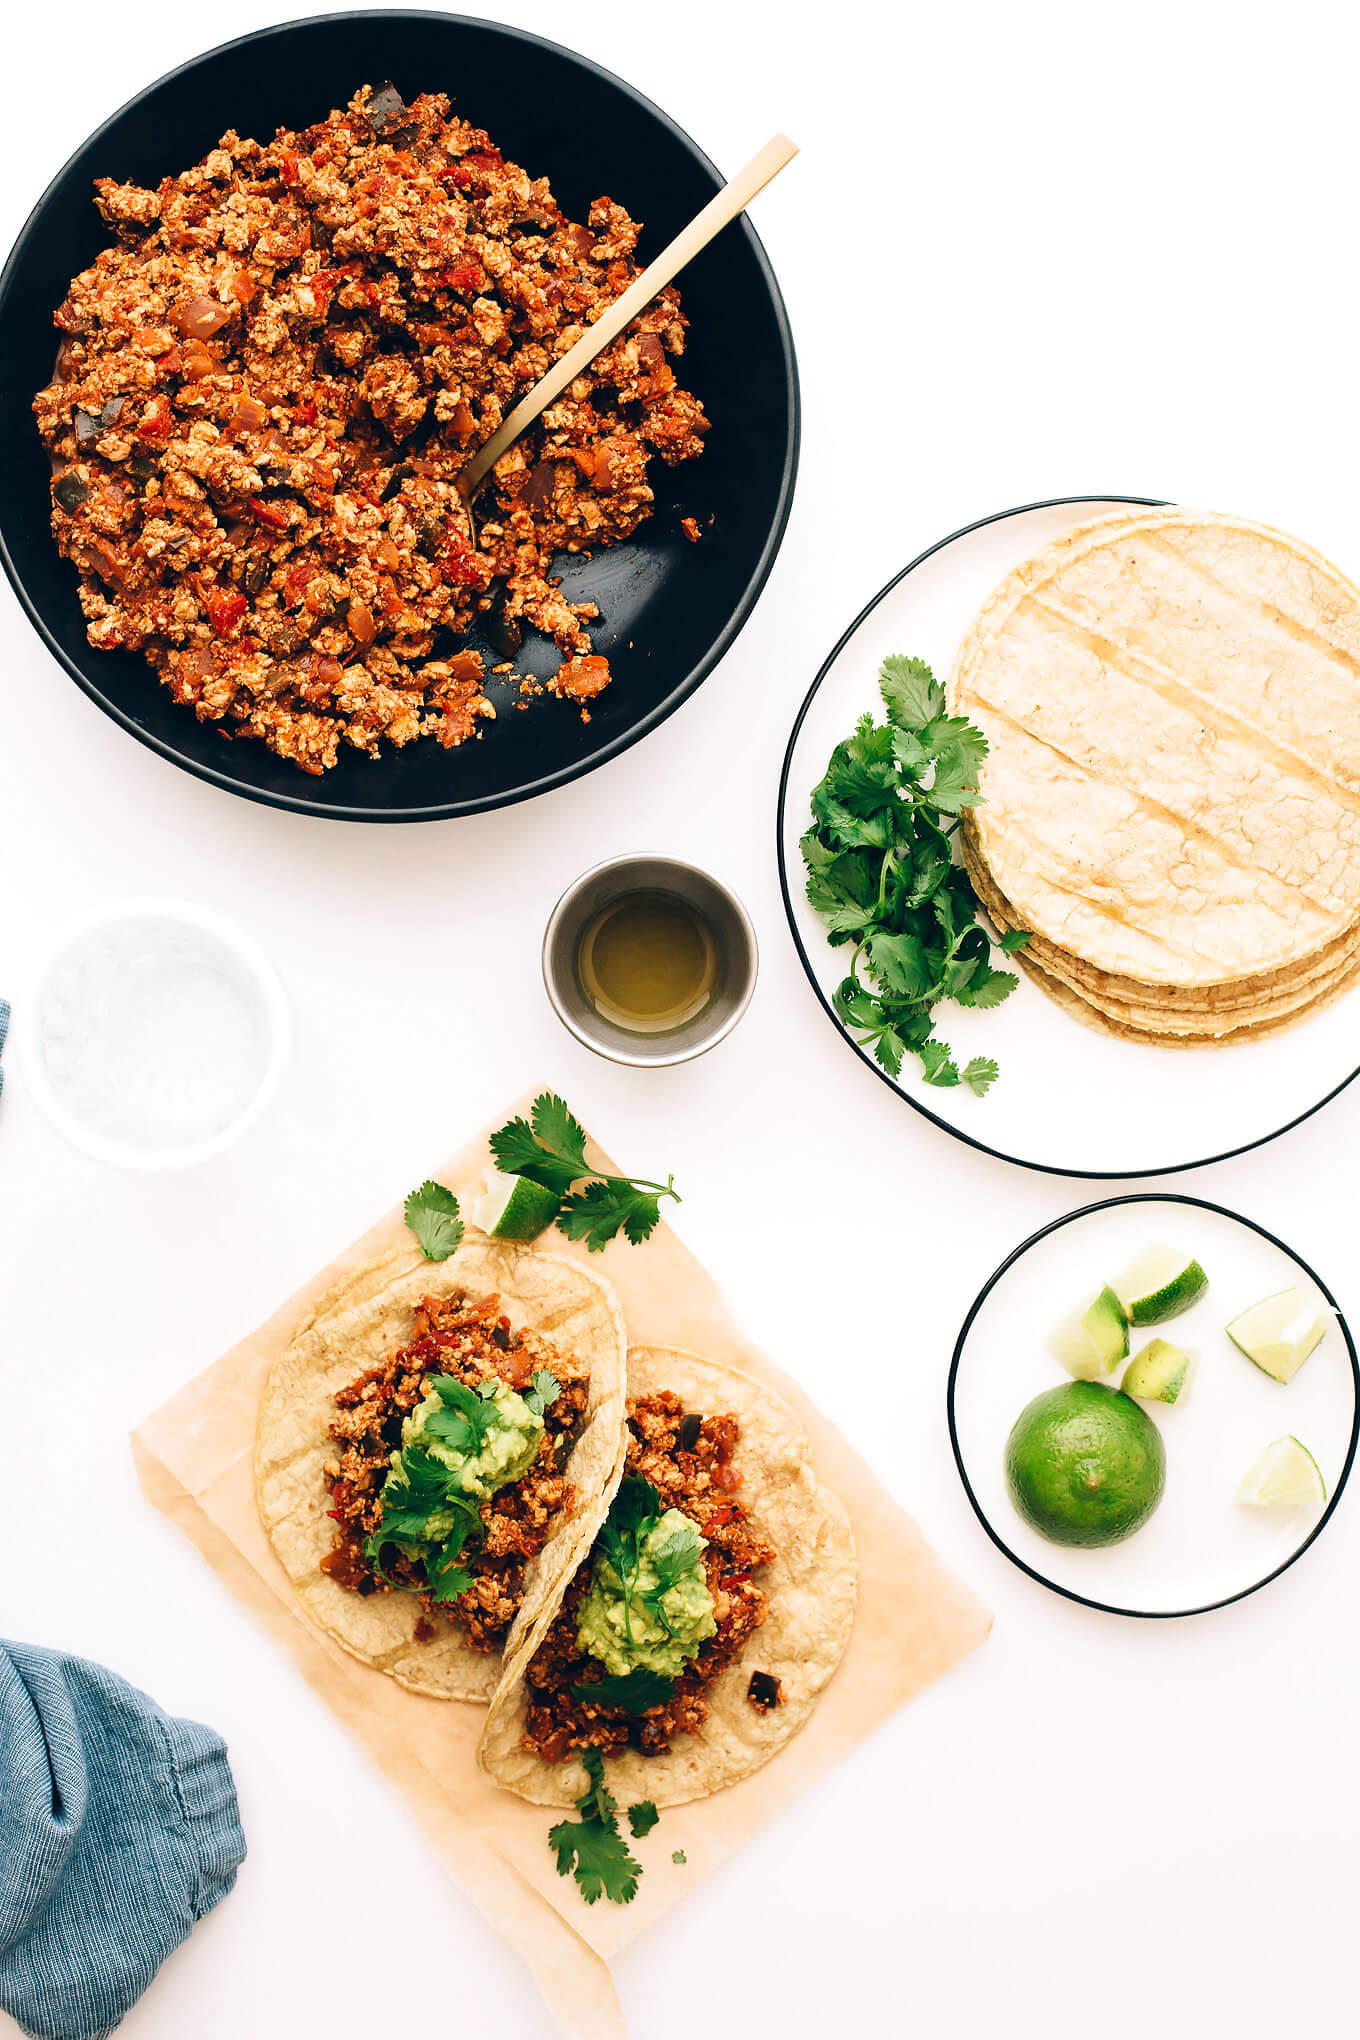 Vegan Spicy Scrambled Tofu Breakfast Tacos